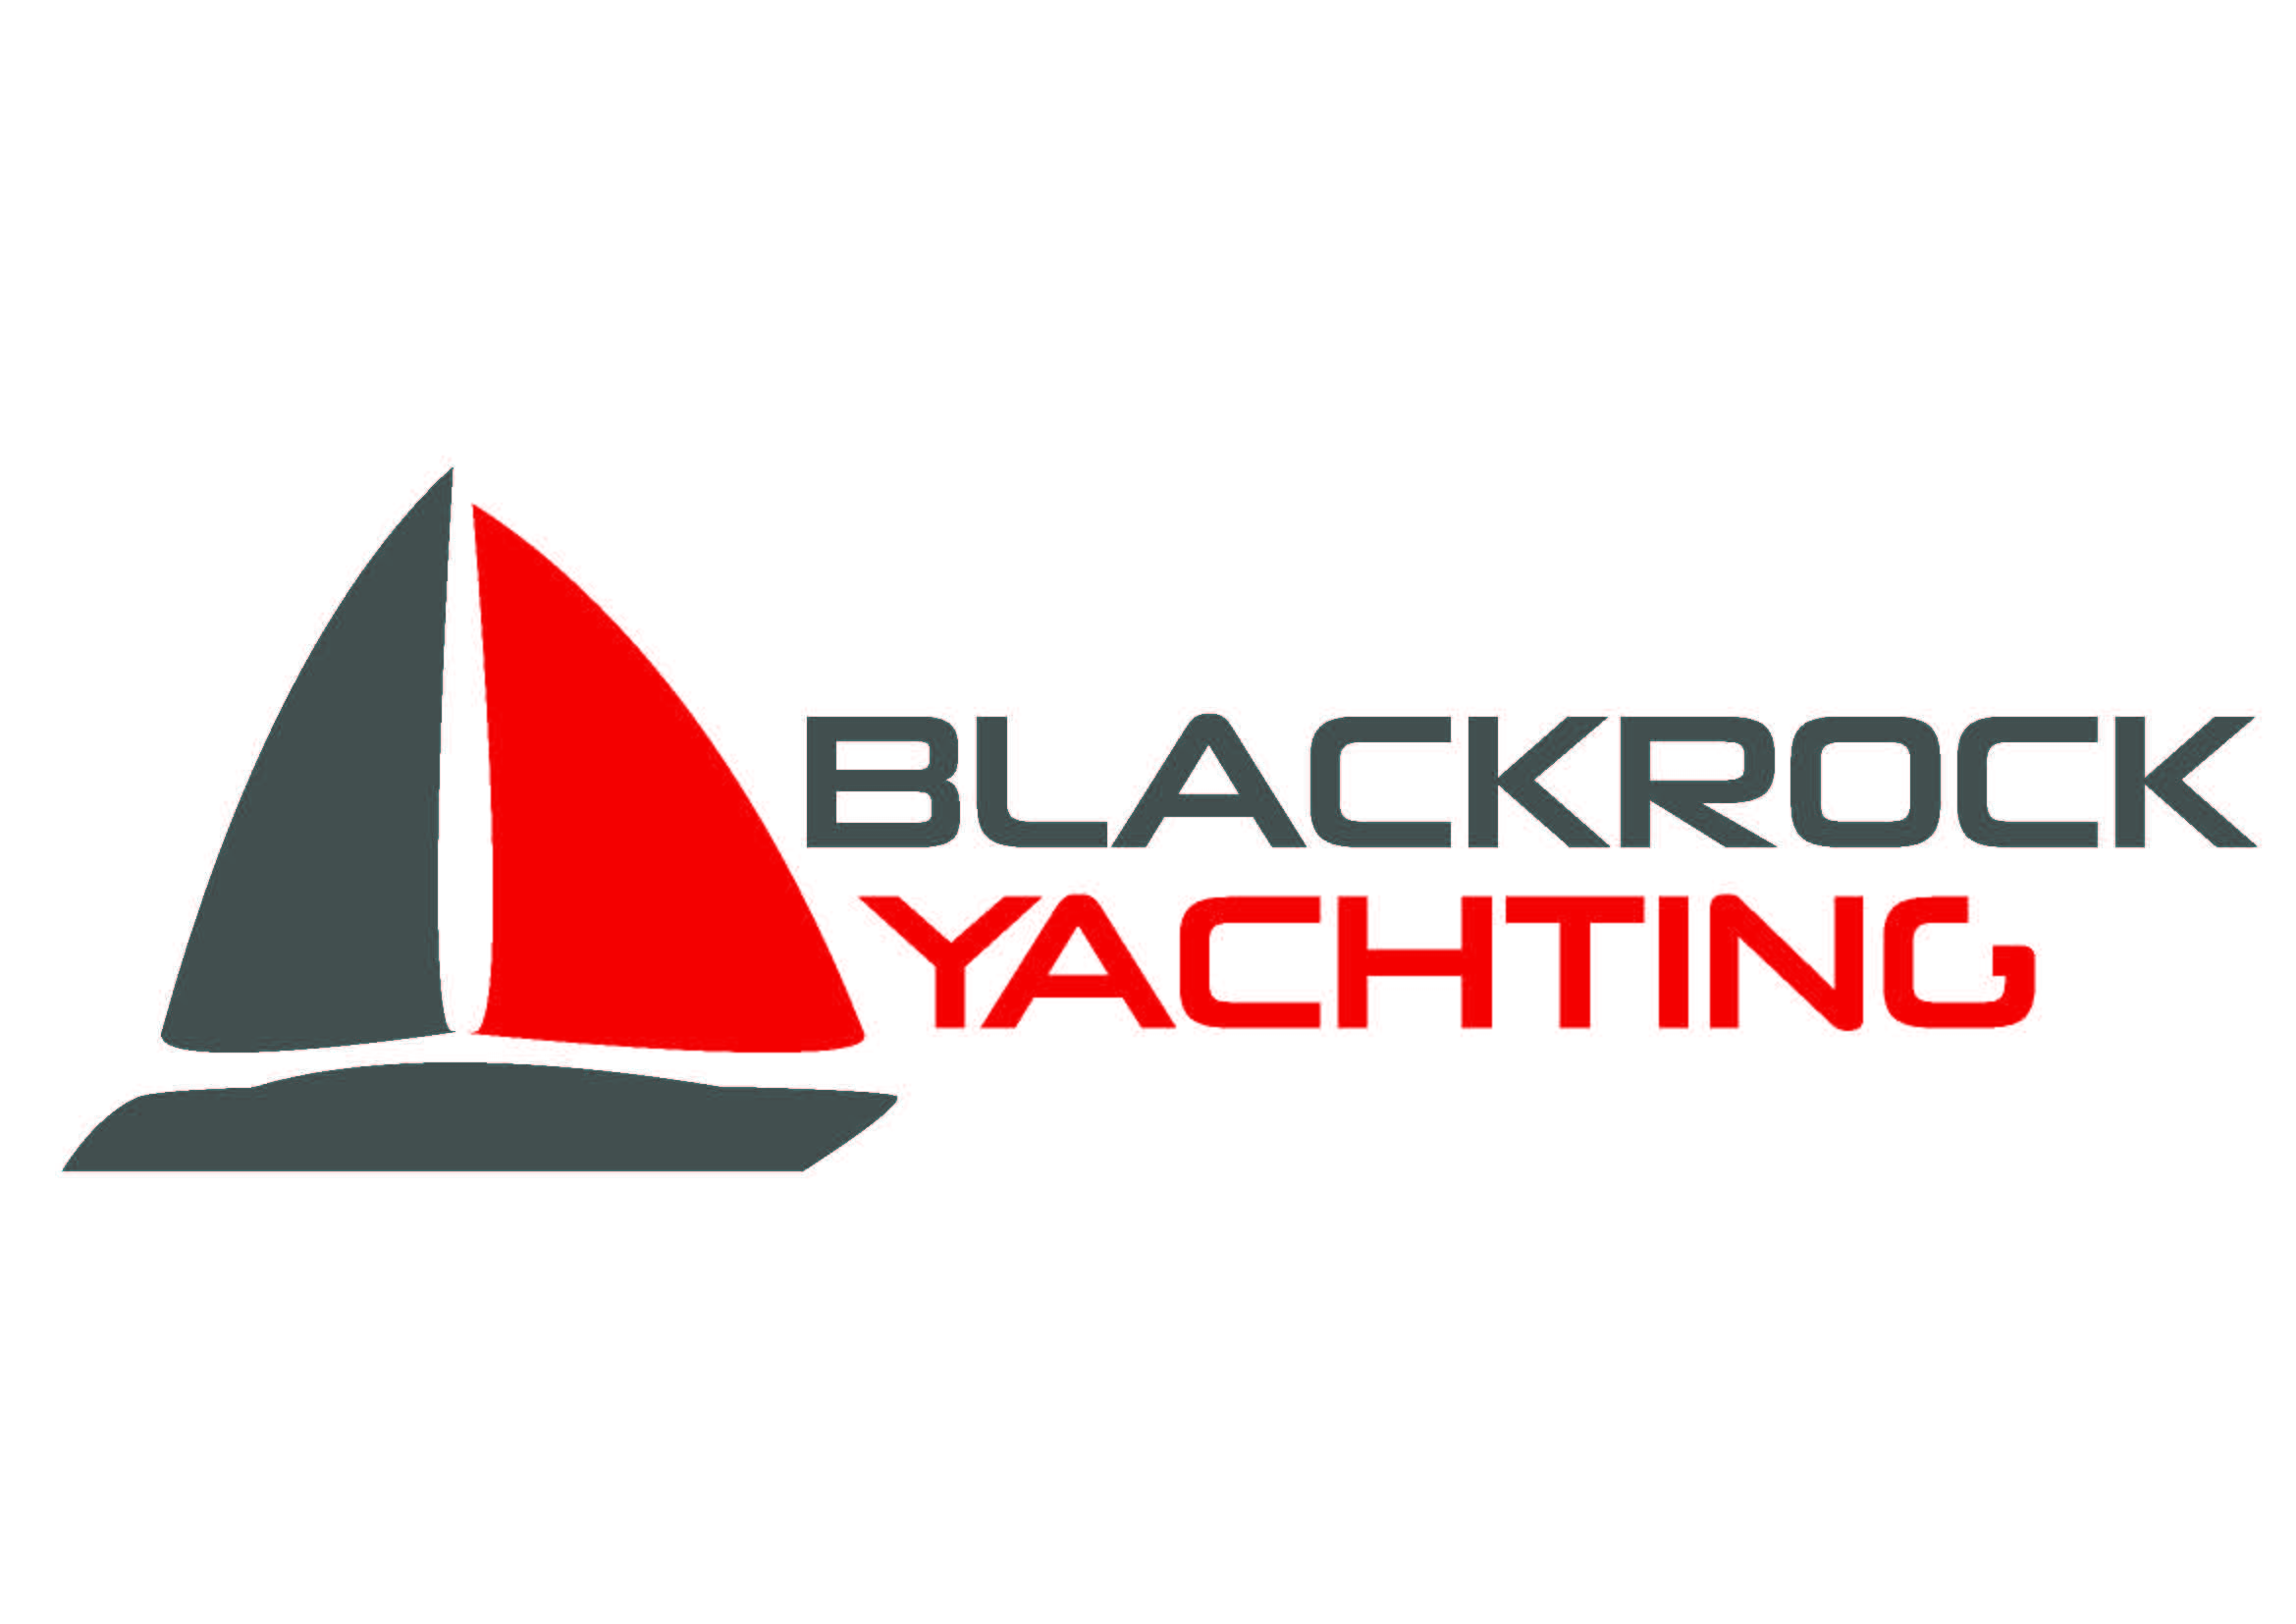 BLACKROCK YACHTING